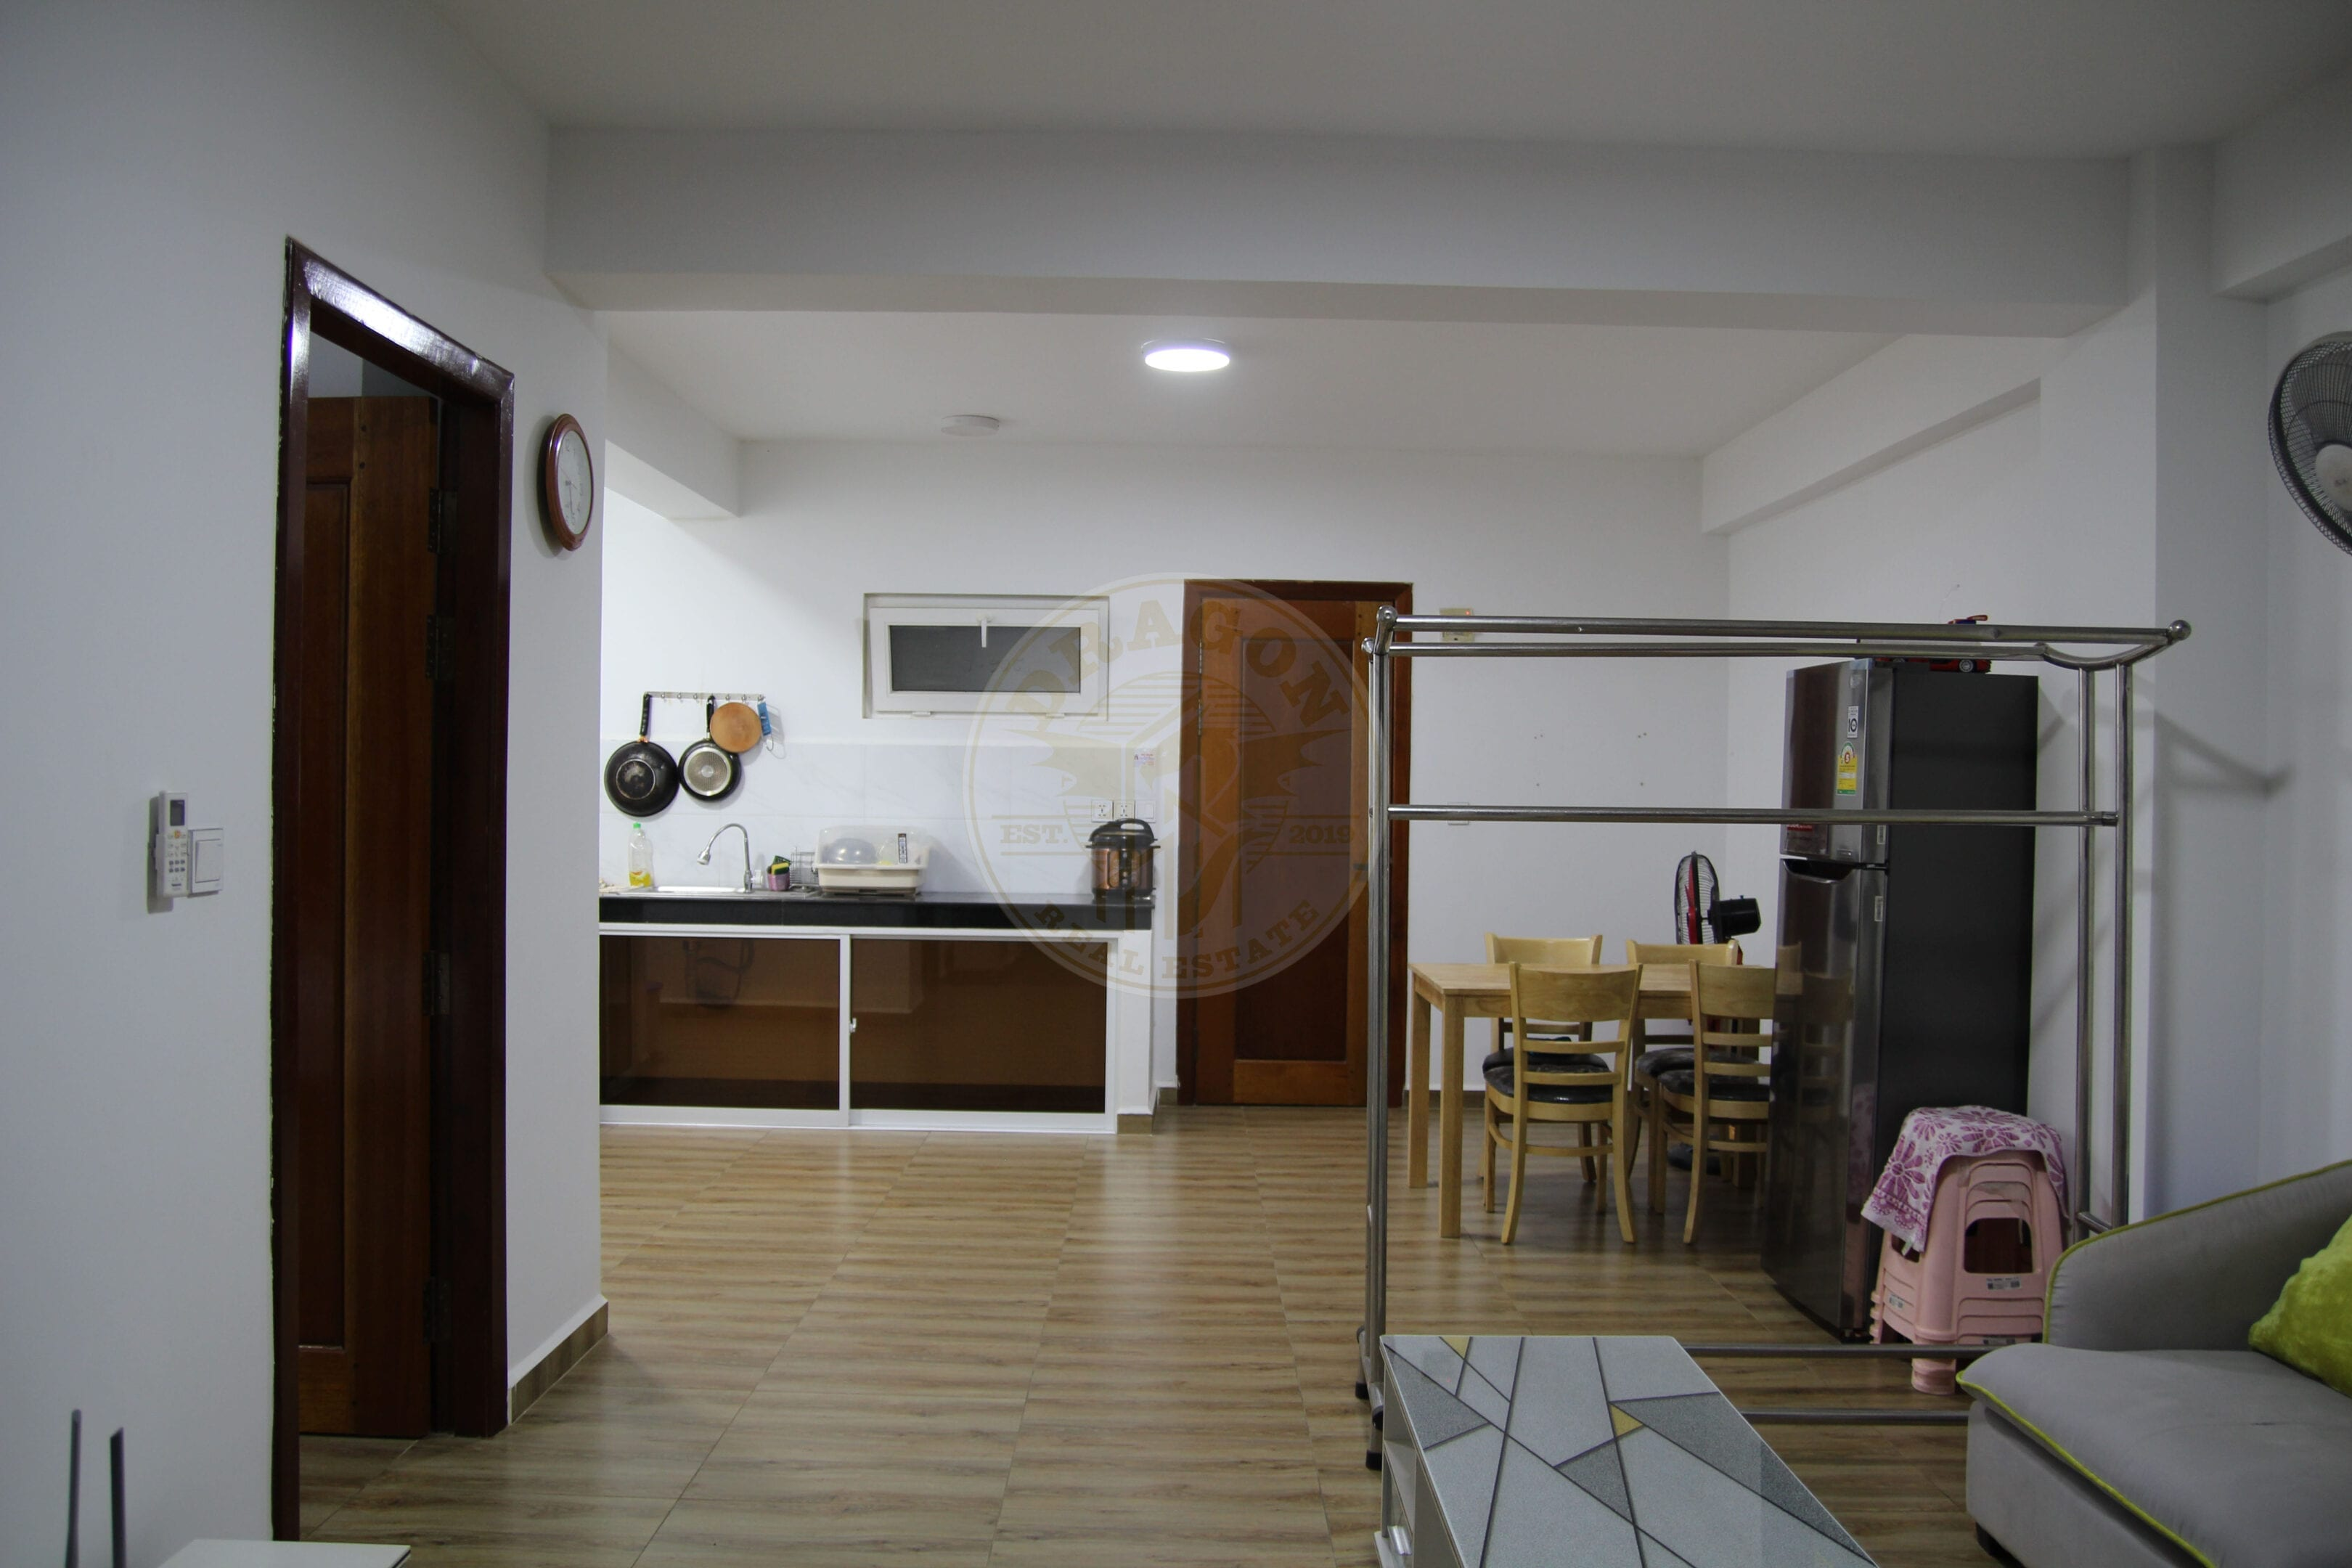 Sophisticated Style! Apartment for Rent in Sihanoukville. Rooms for Rent in Sihanoukville Cambodia